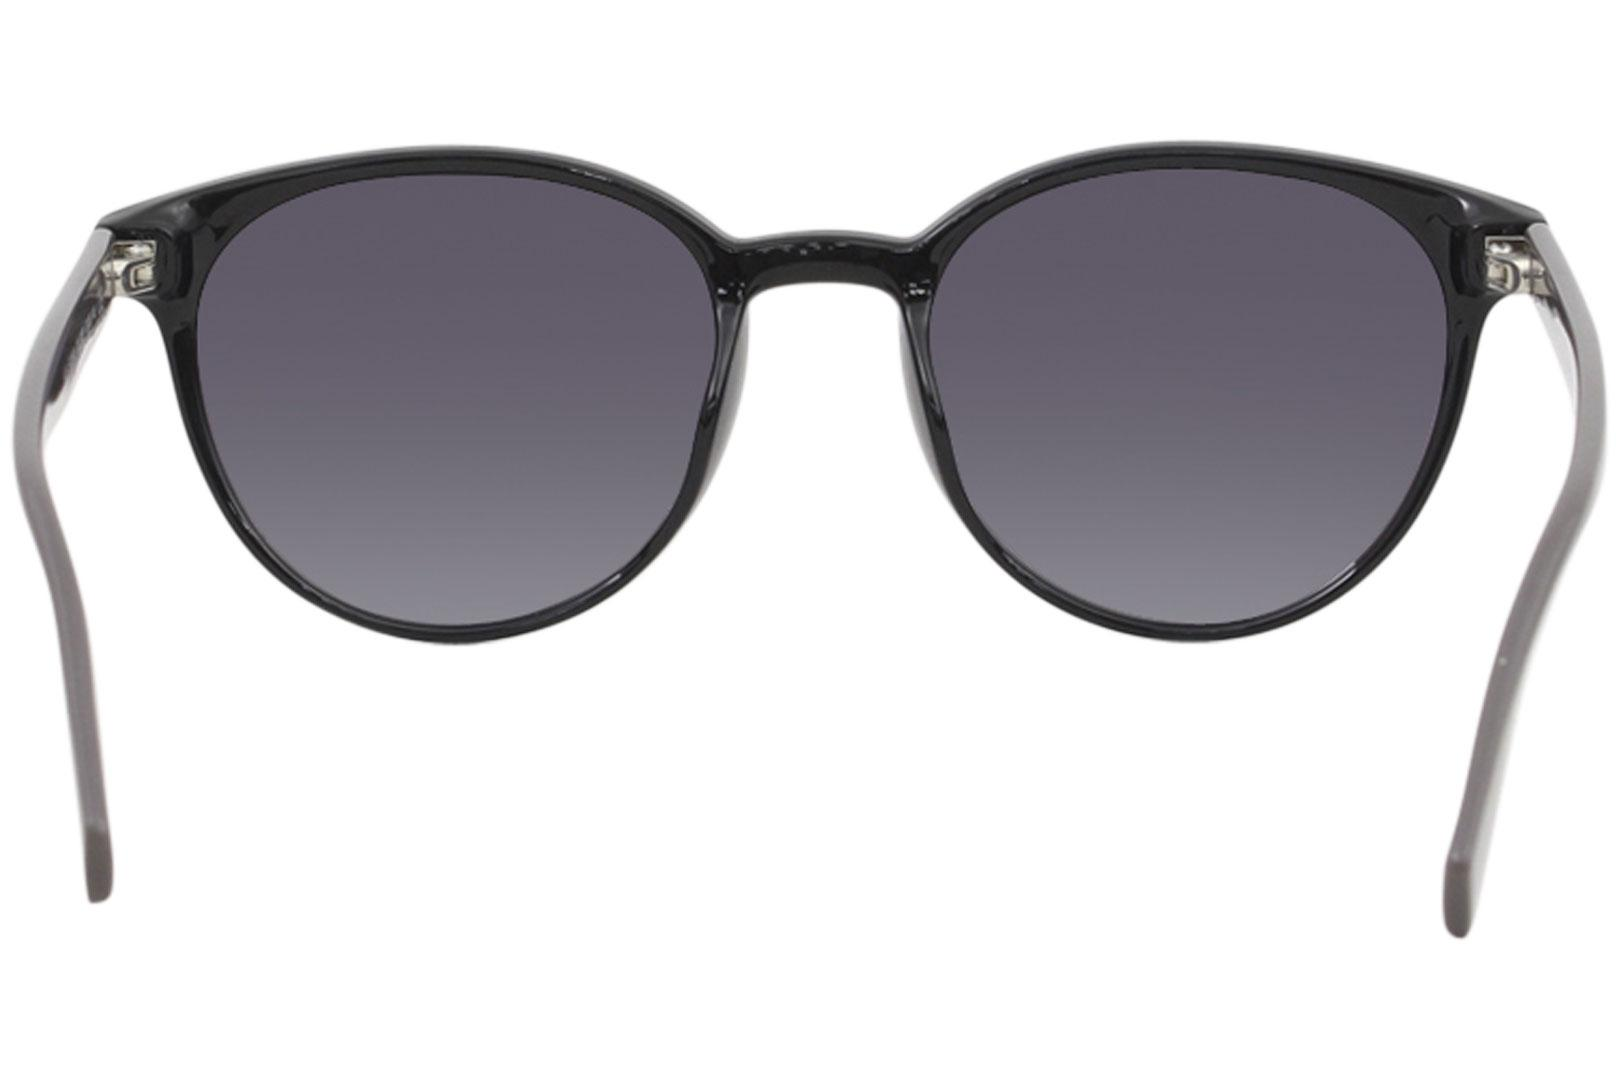 3f811c46f70 Converse Women s SCO048 SCO 048 Polarized Fashion Oval Sunglasses by  Converse. Touch to zoom